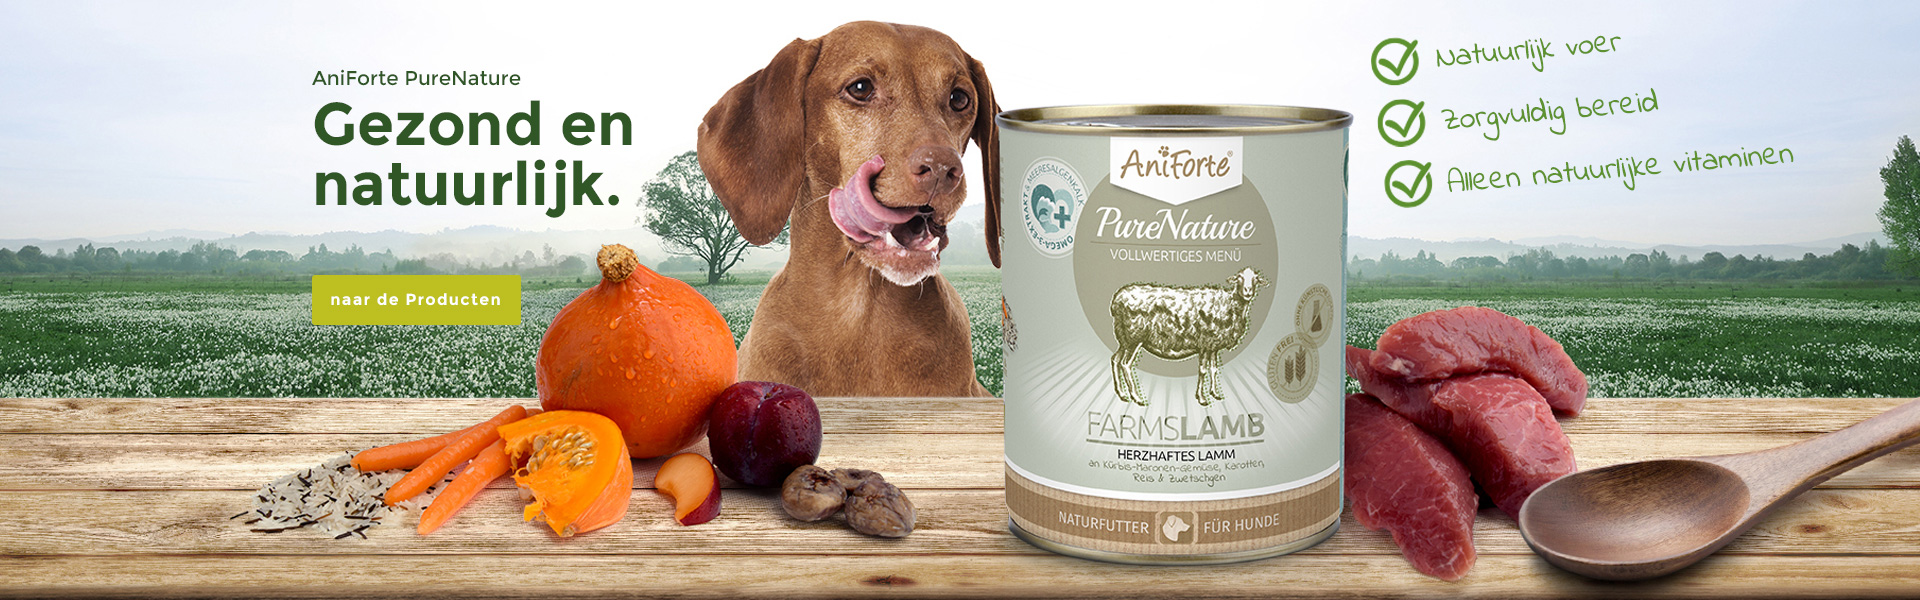 AniForte® - PureNature diervoeder